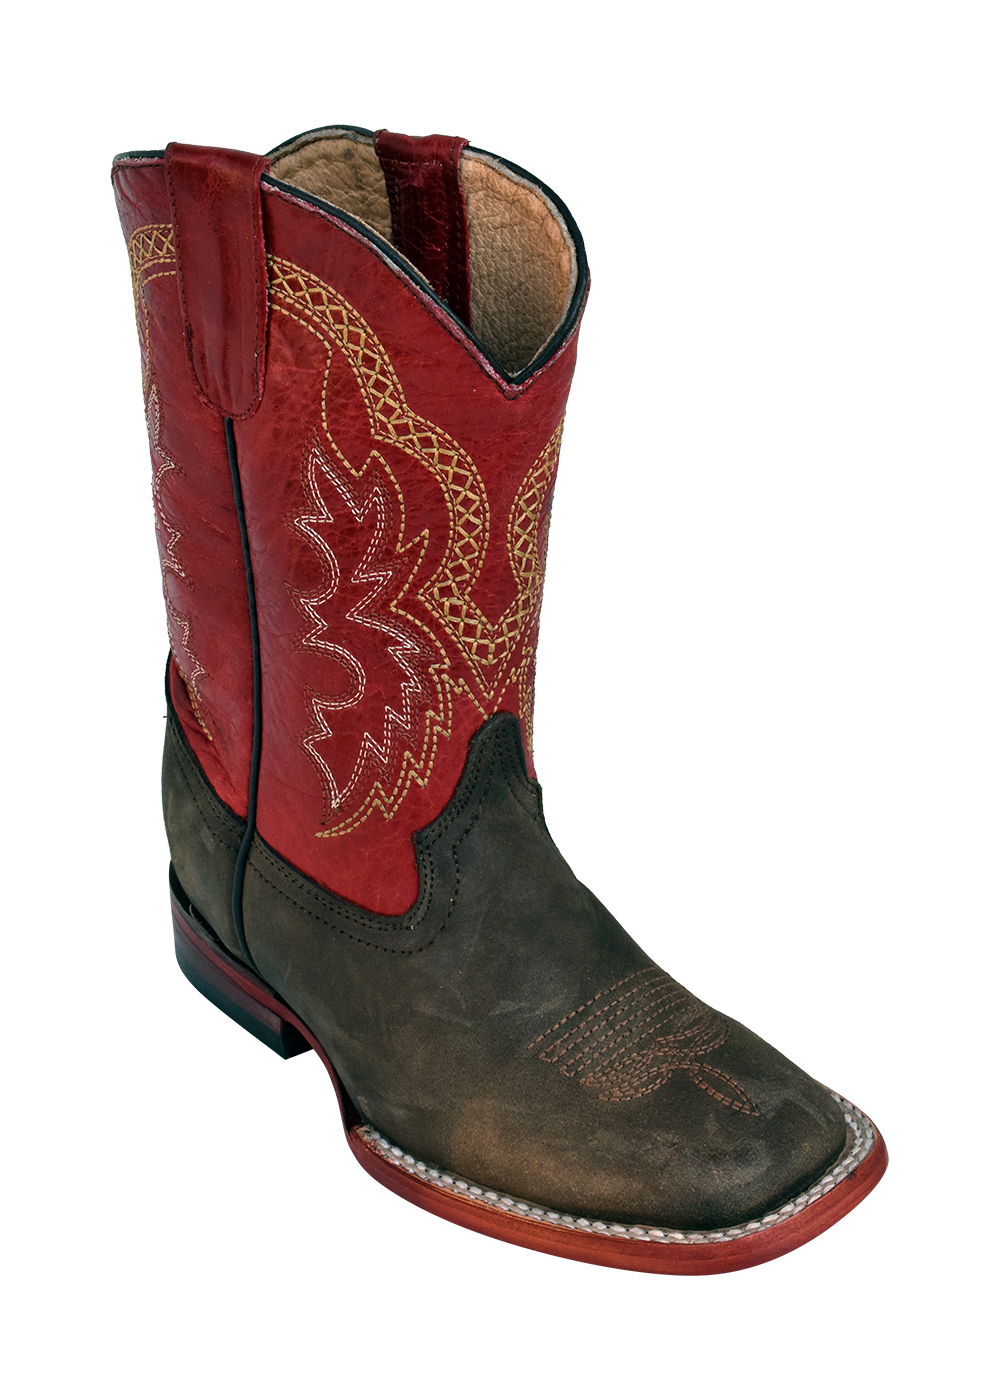 Ferrini Kid's Cowboy Boot Dallas Chocolate/Red